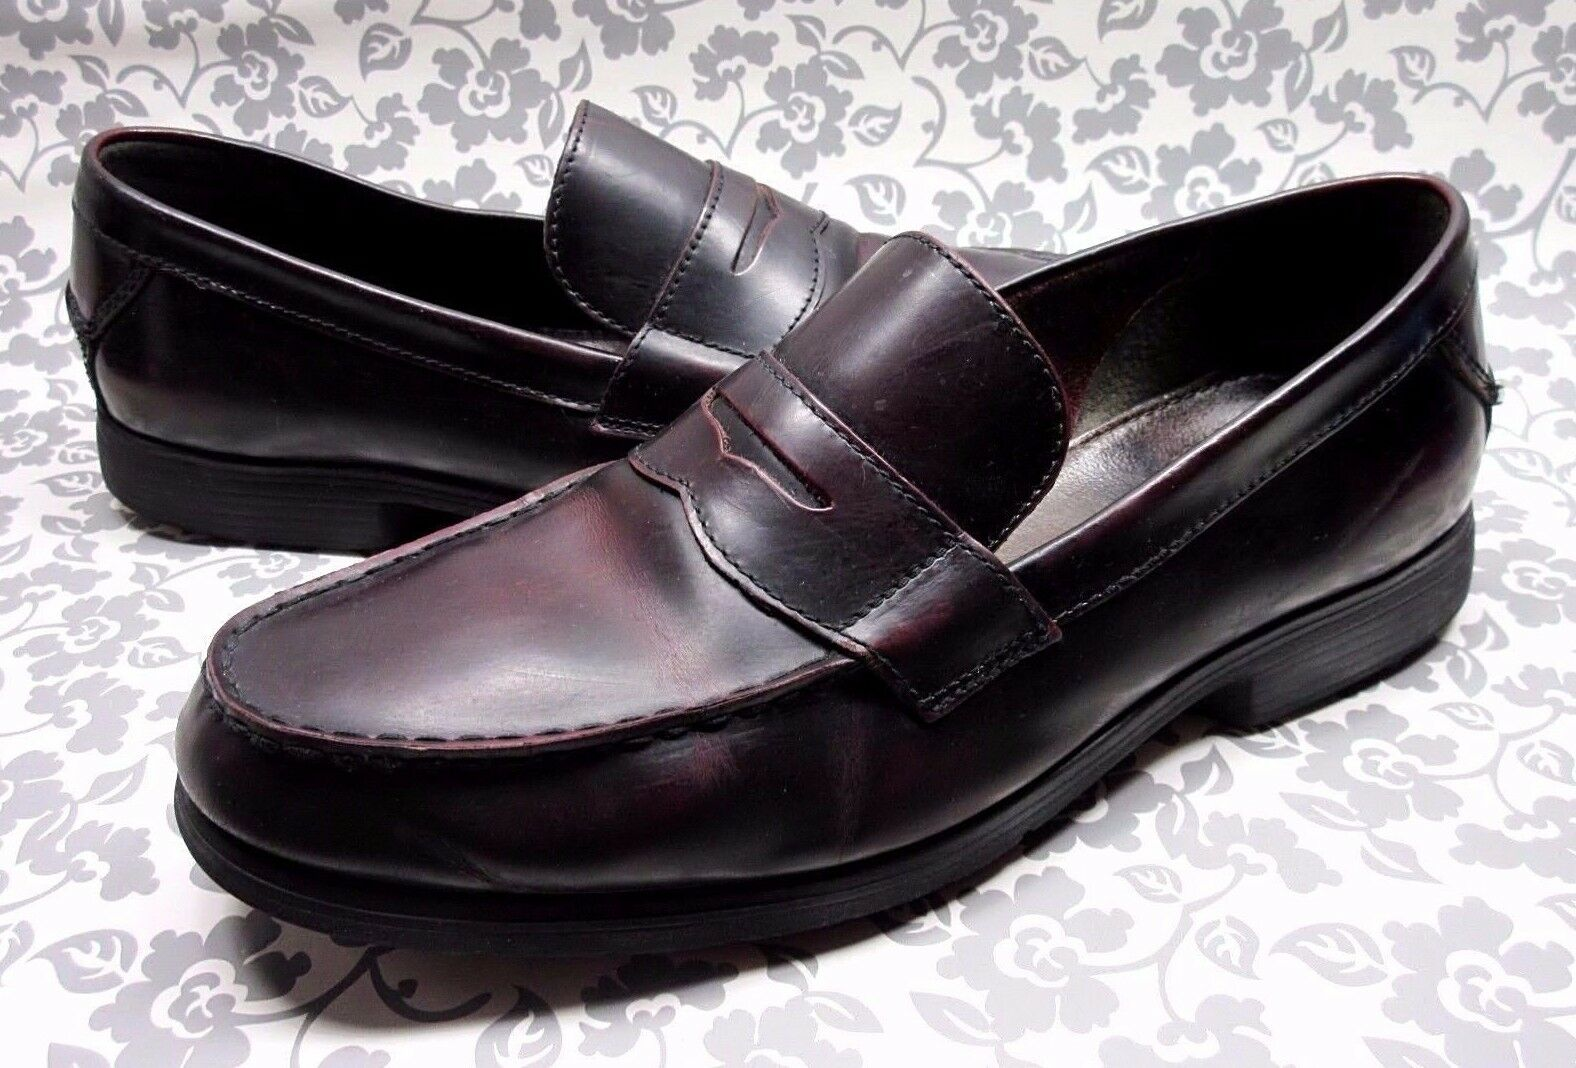 BOSTONIAN MENS PENNY LOAFERS 10 M BURGUNDY LEATHER MOC SLIP ON SHOES